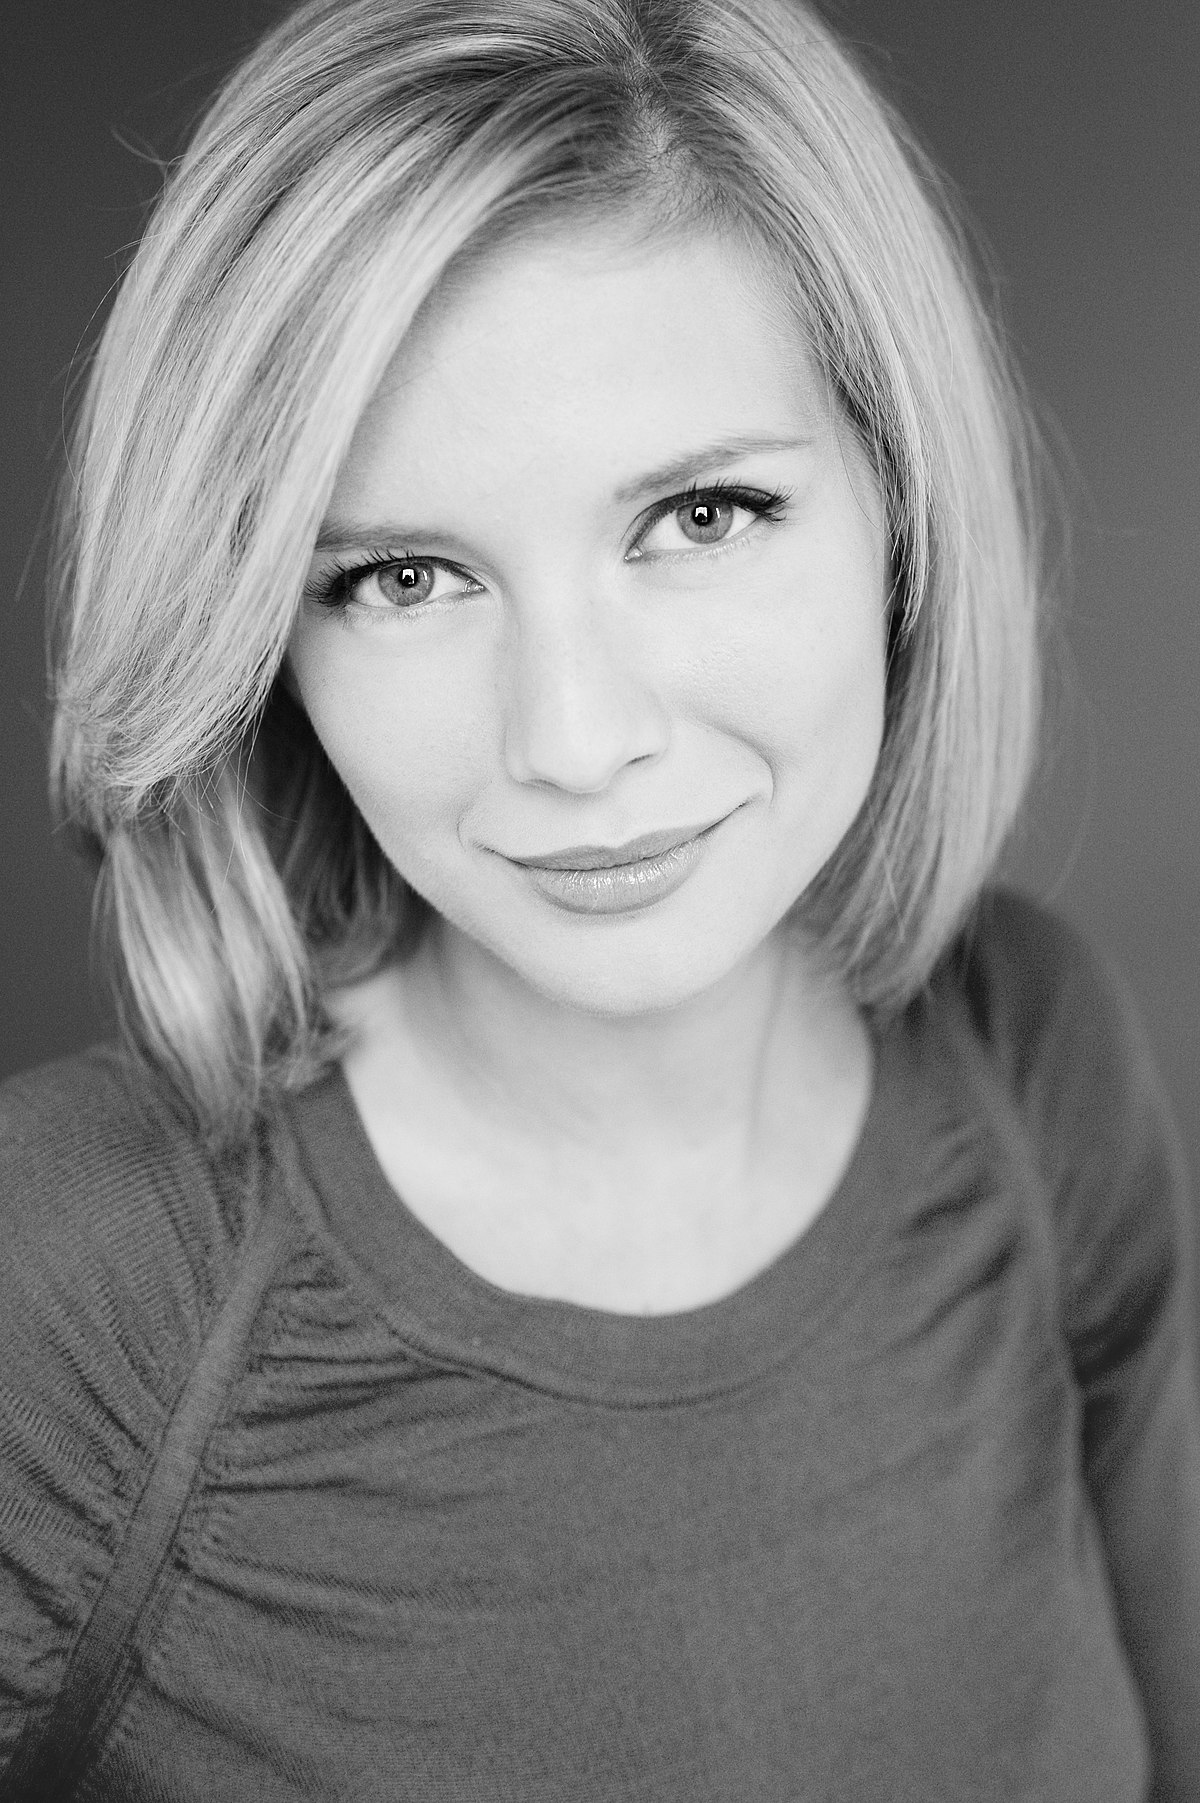 rachel riley - photo #1